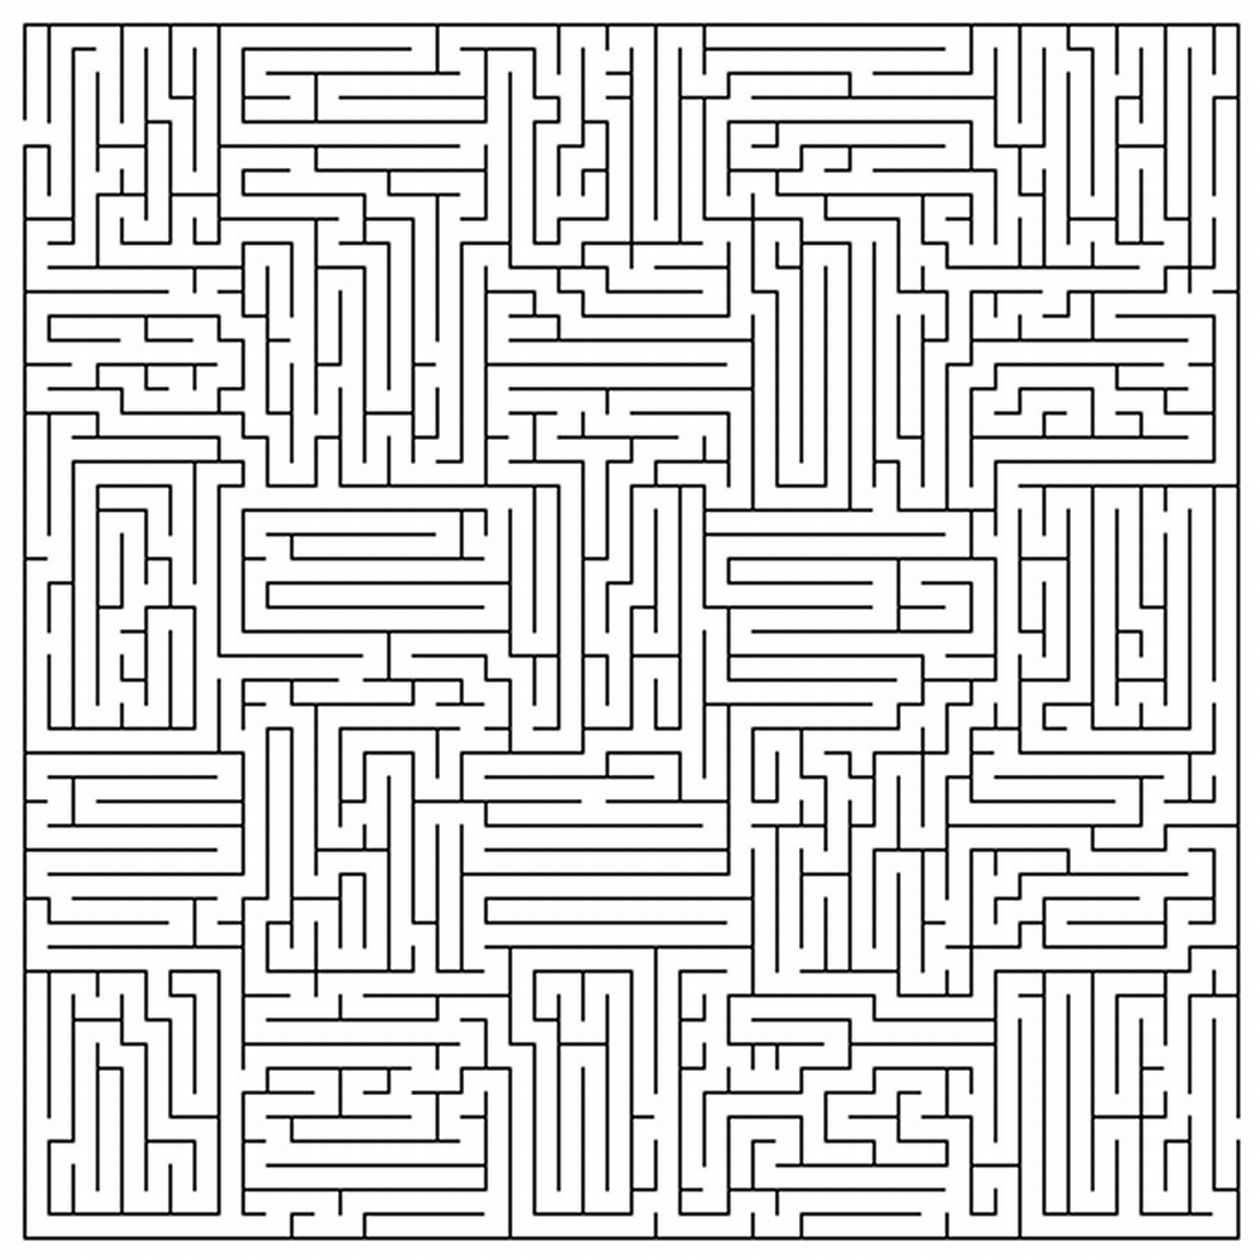 5 Images of Printable Mazes For Adults